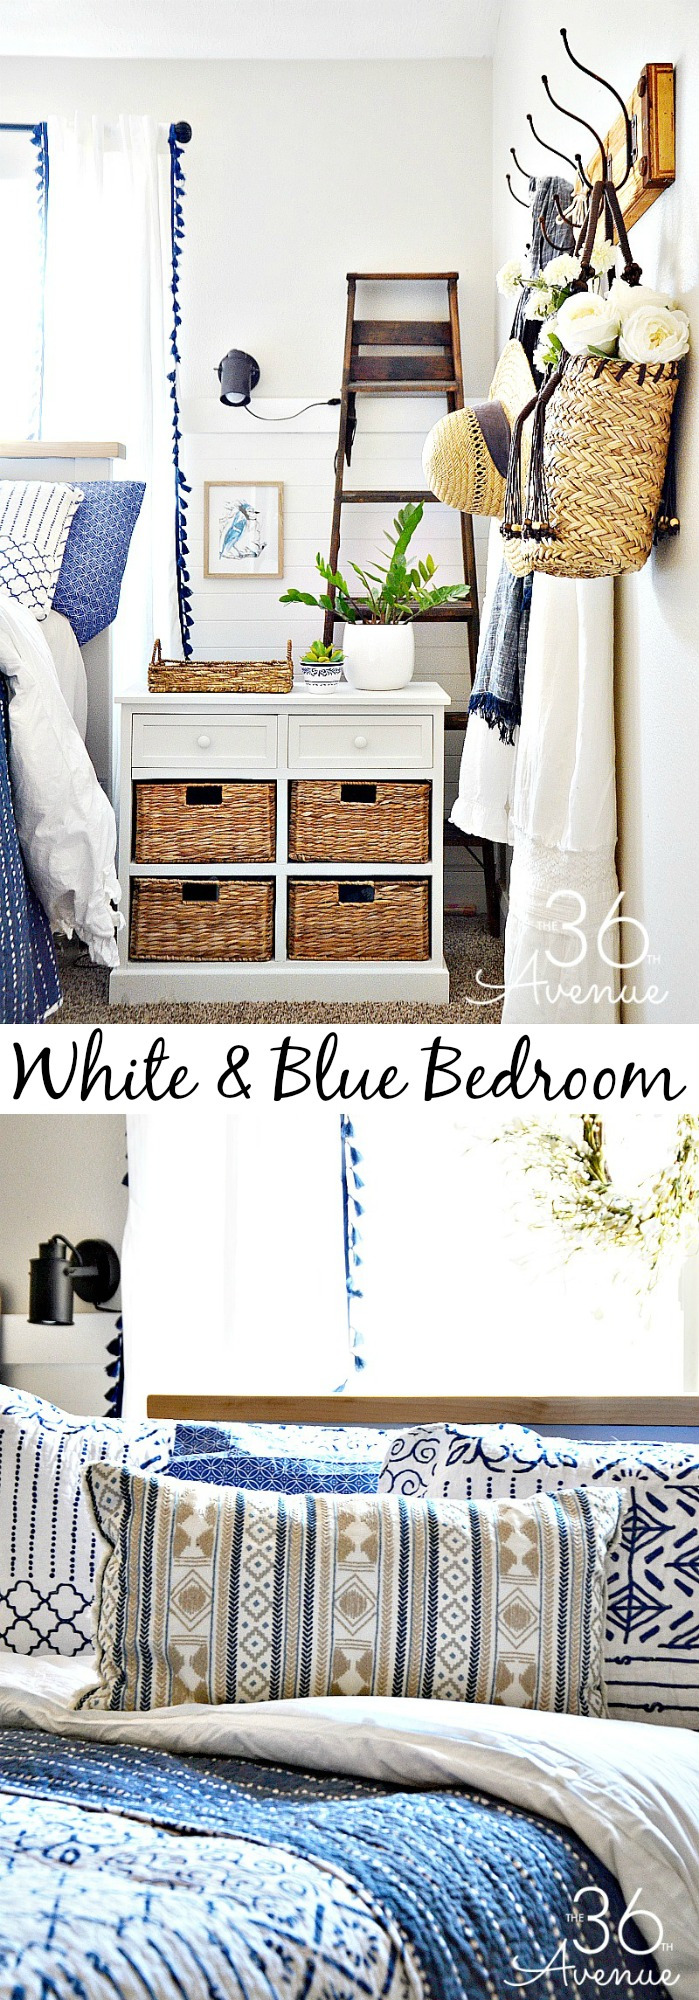 Bedroom Decor Ideas - White and blue Bedroom Decor.